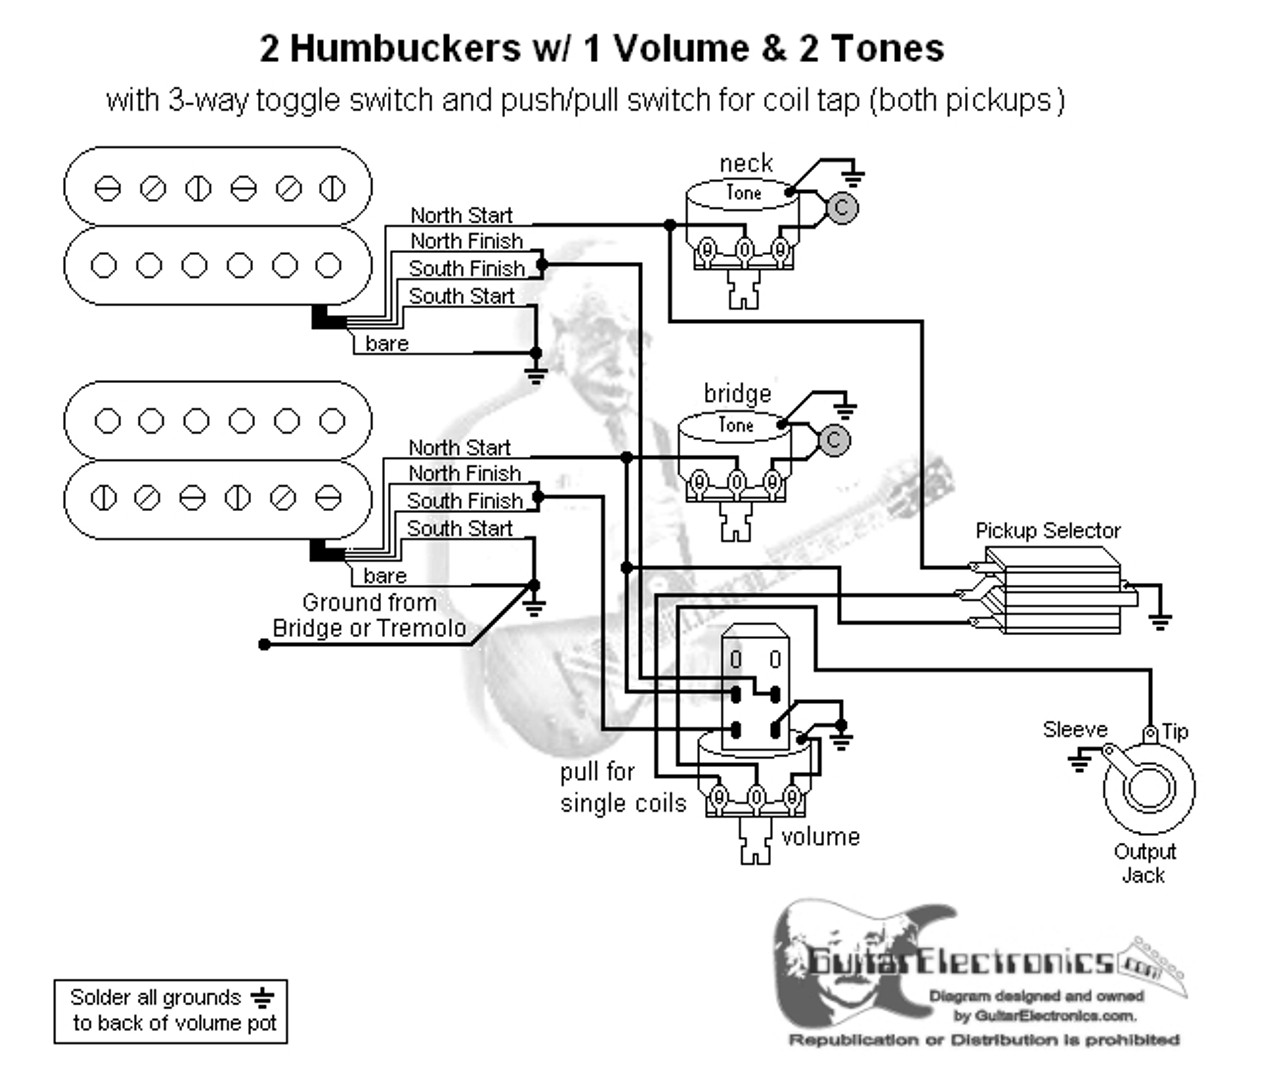 medium resolution of 2 humbuckers 3 way toggle switch 1 volume 2 tones coil tap wiring diagram 2 humbuckers 3way toggle switch 1 volume 2 tones coil